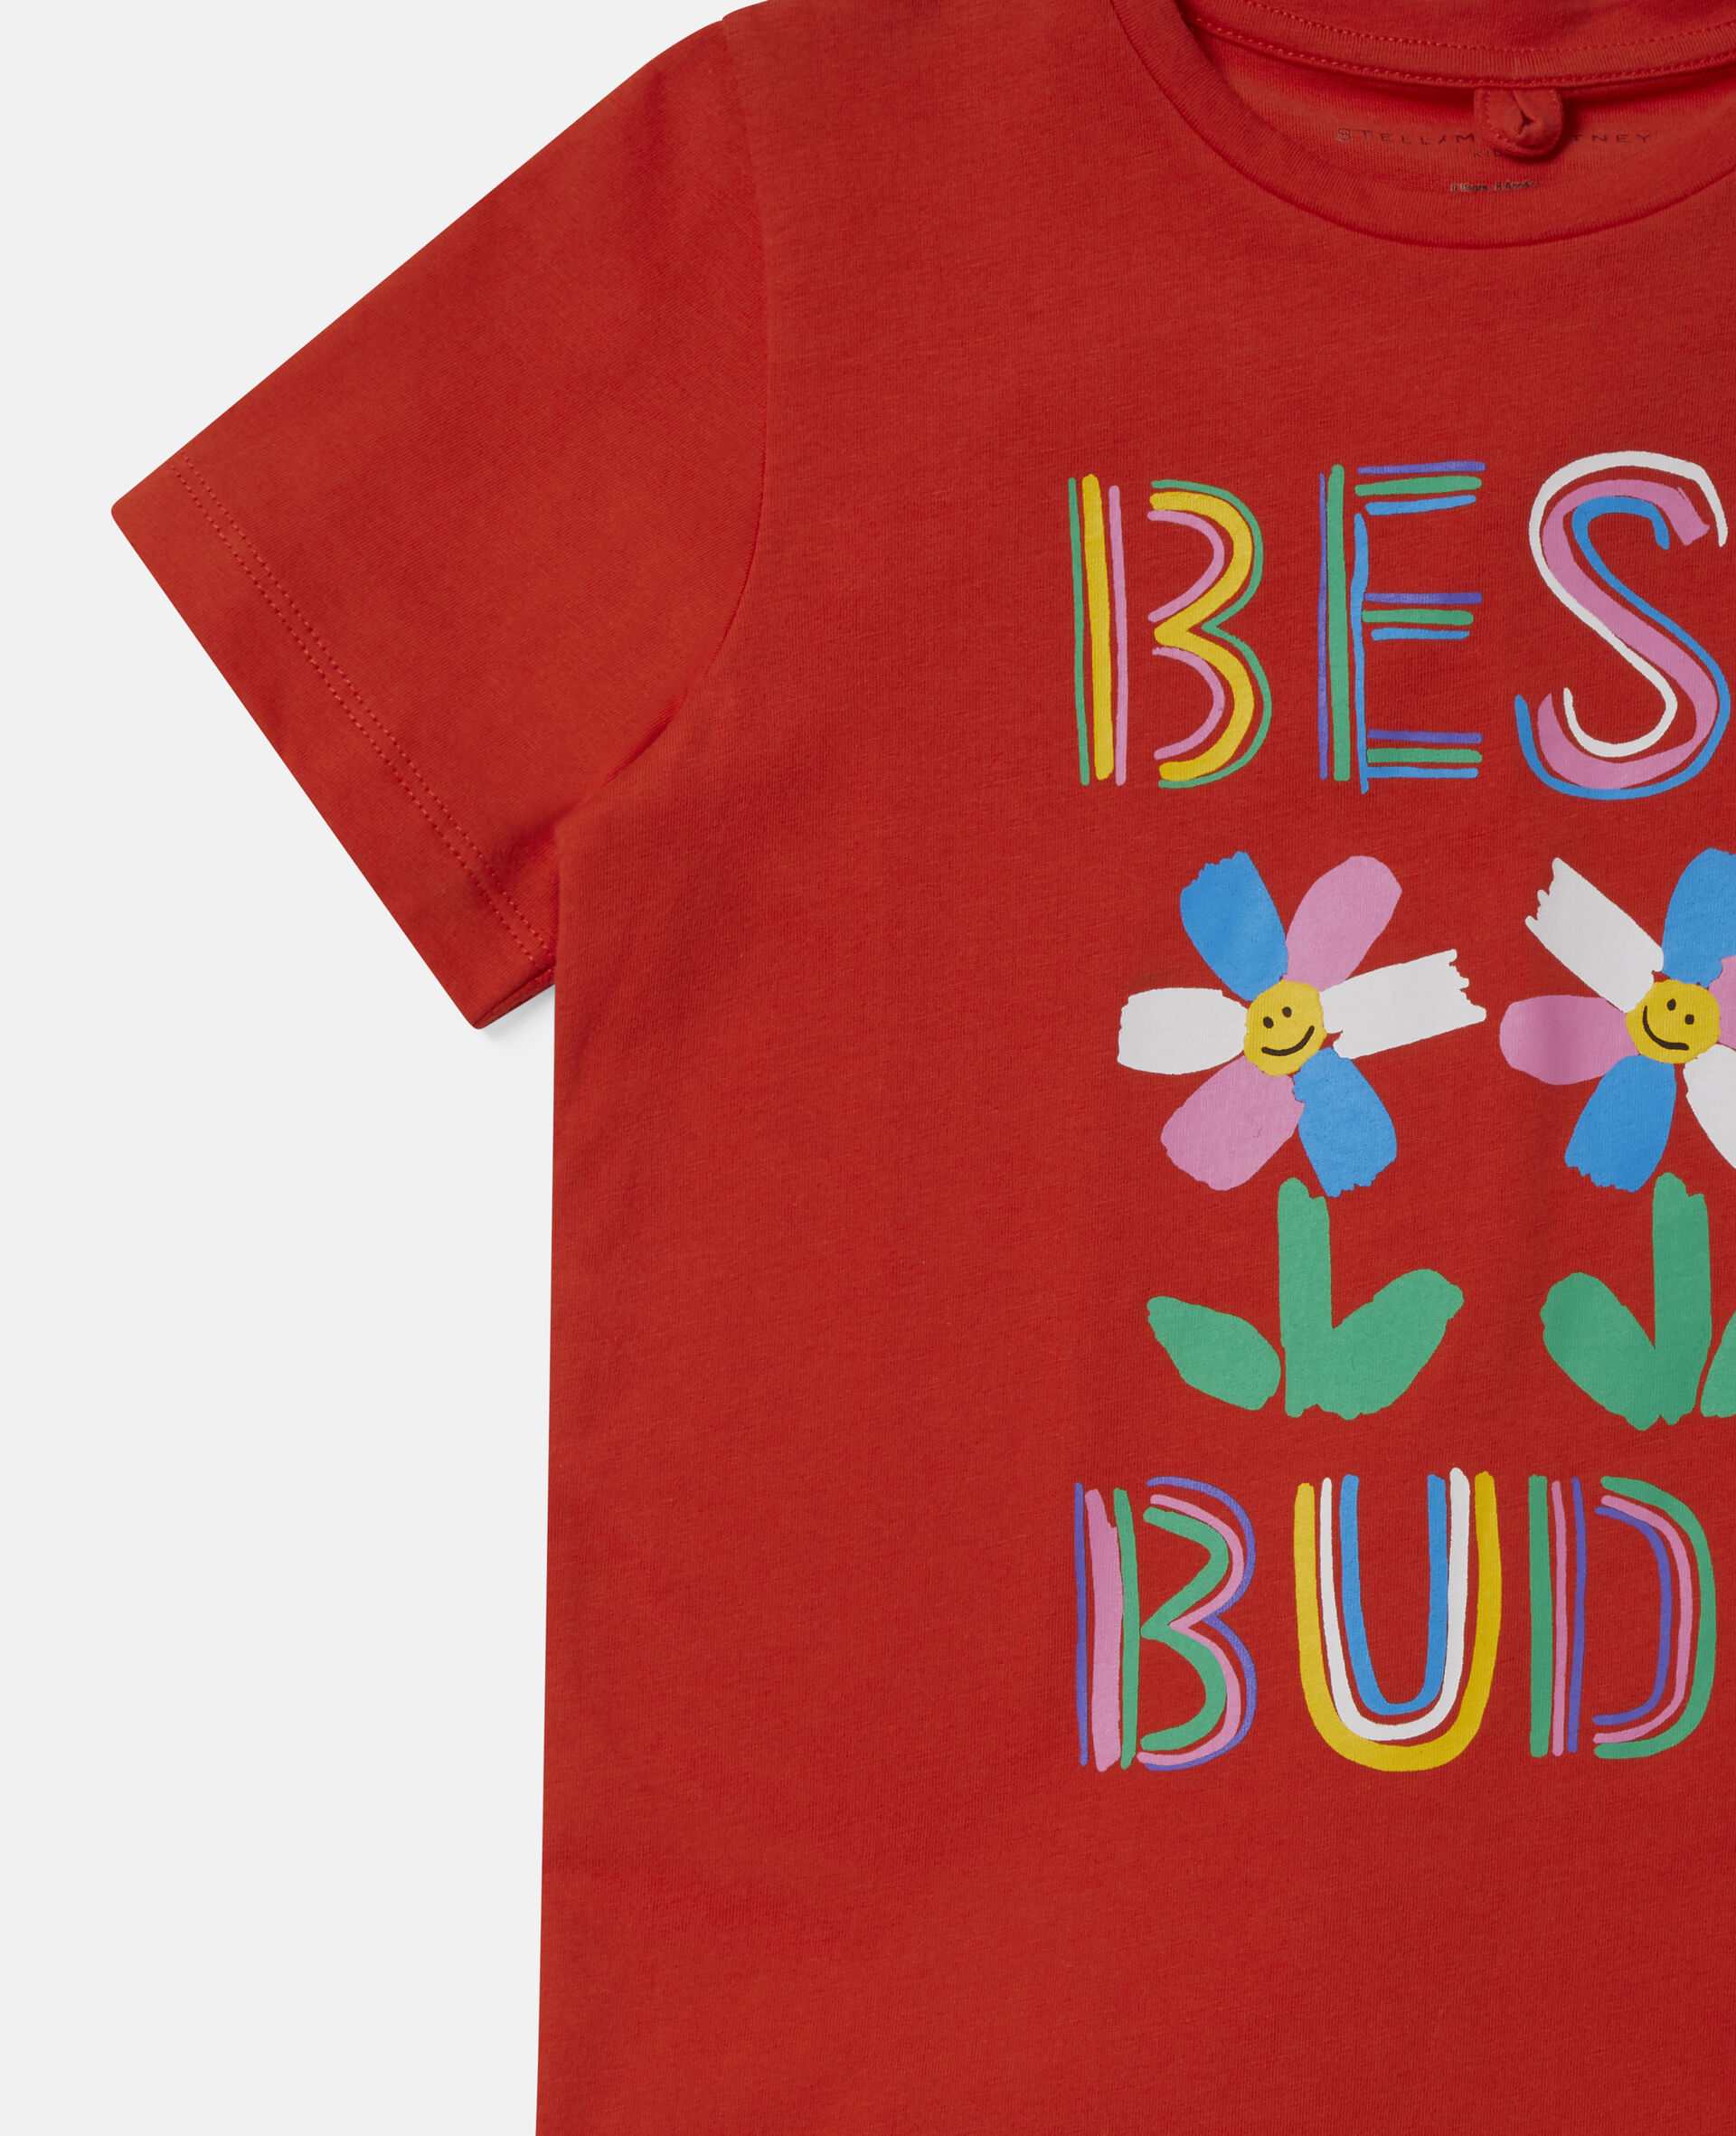 Best Buds' Cotton T-shirt-Red-large image number 2